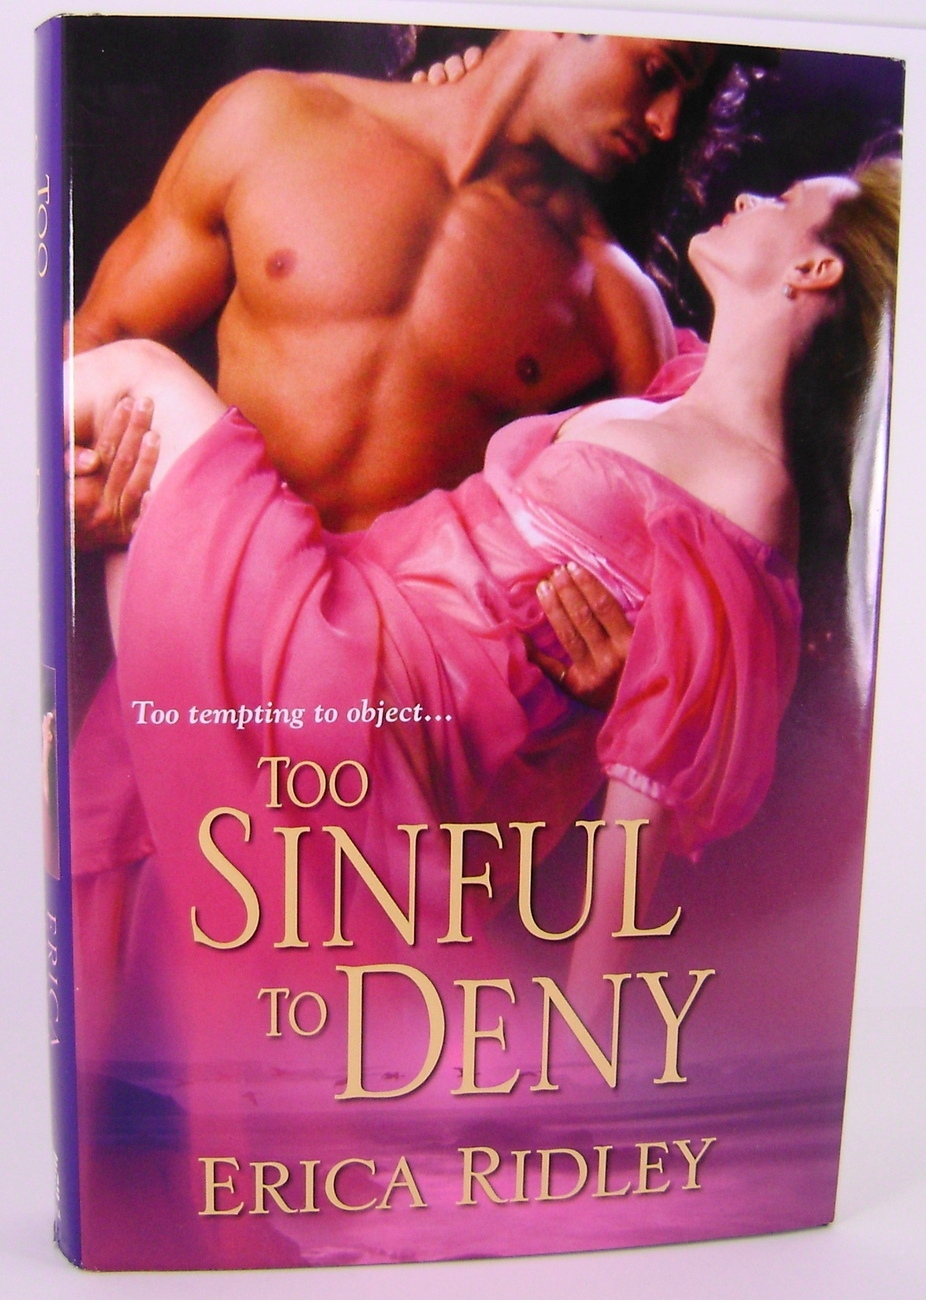 Too Sinful To Deny By Erica Ridley HC BCE